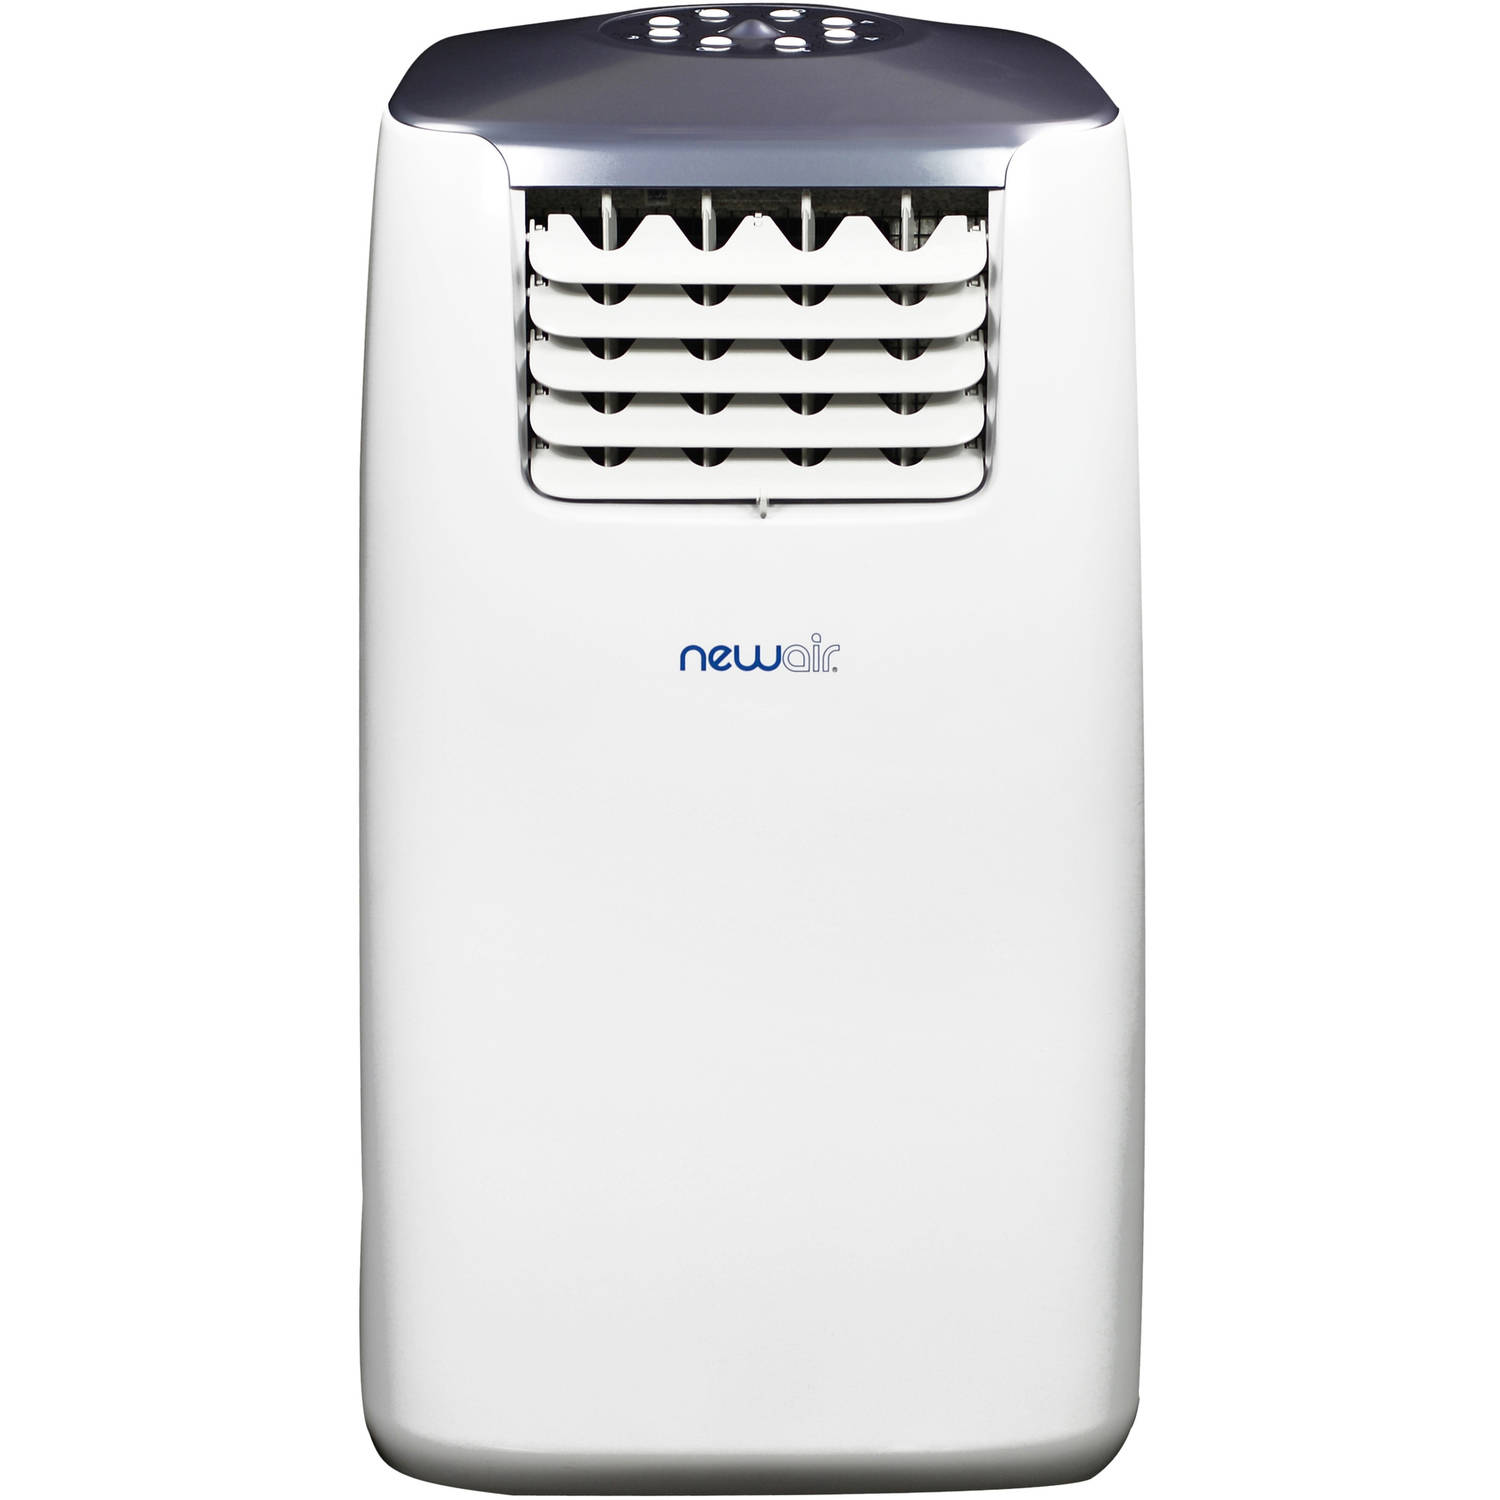 NewAir AC-14100H 14,000-BTU Room Portable Air Conditioner with Supplemental 14,000-BTU Heater